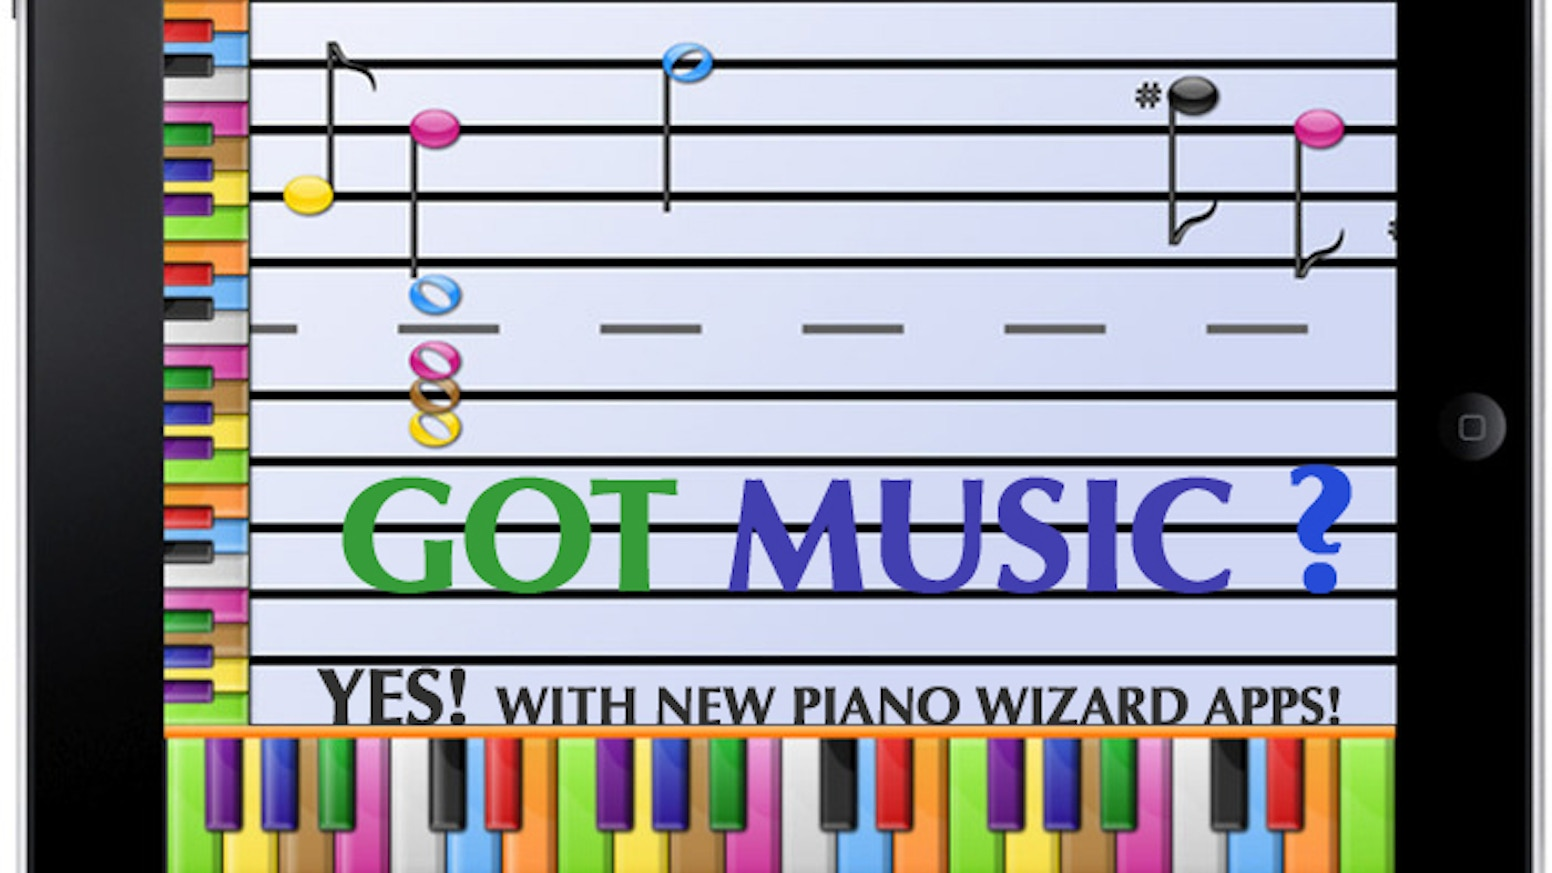 Learn to play music in minutes kickstart your brain by chris piano wizard brings trusted music video game system to ios providing effective and affordable music education to millions baditri Choice Image